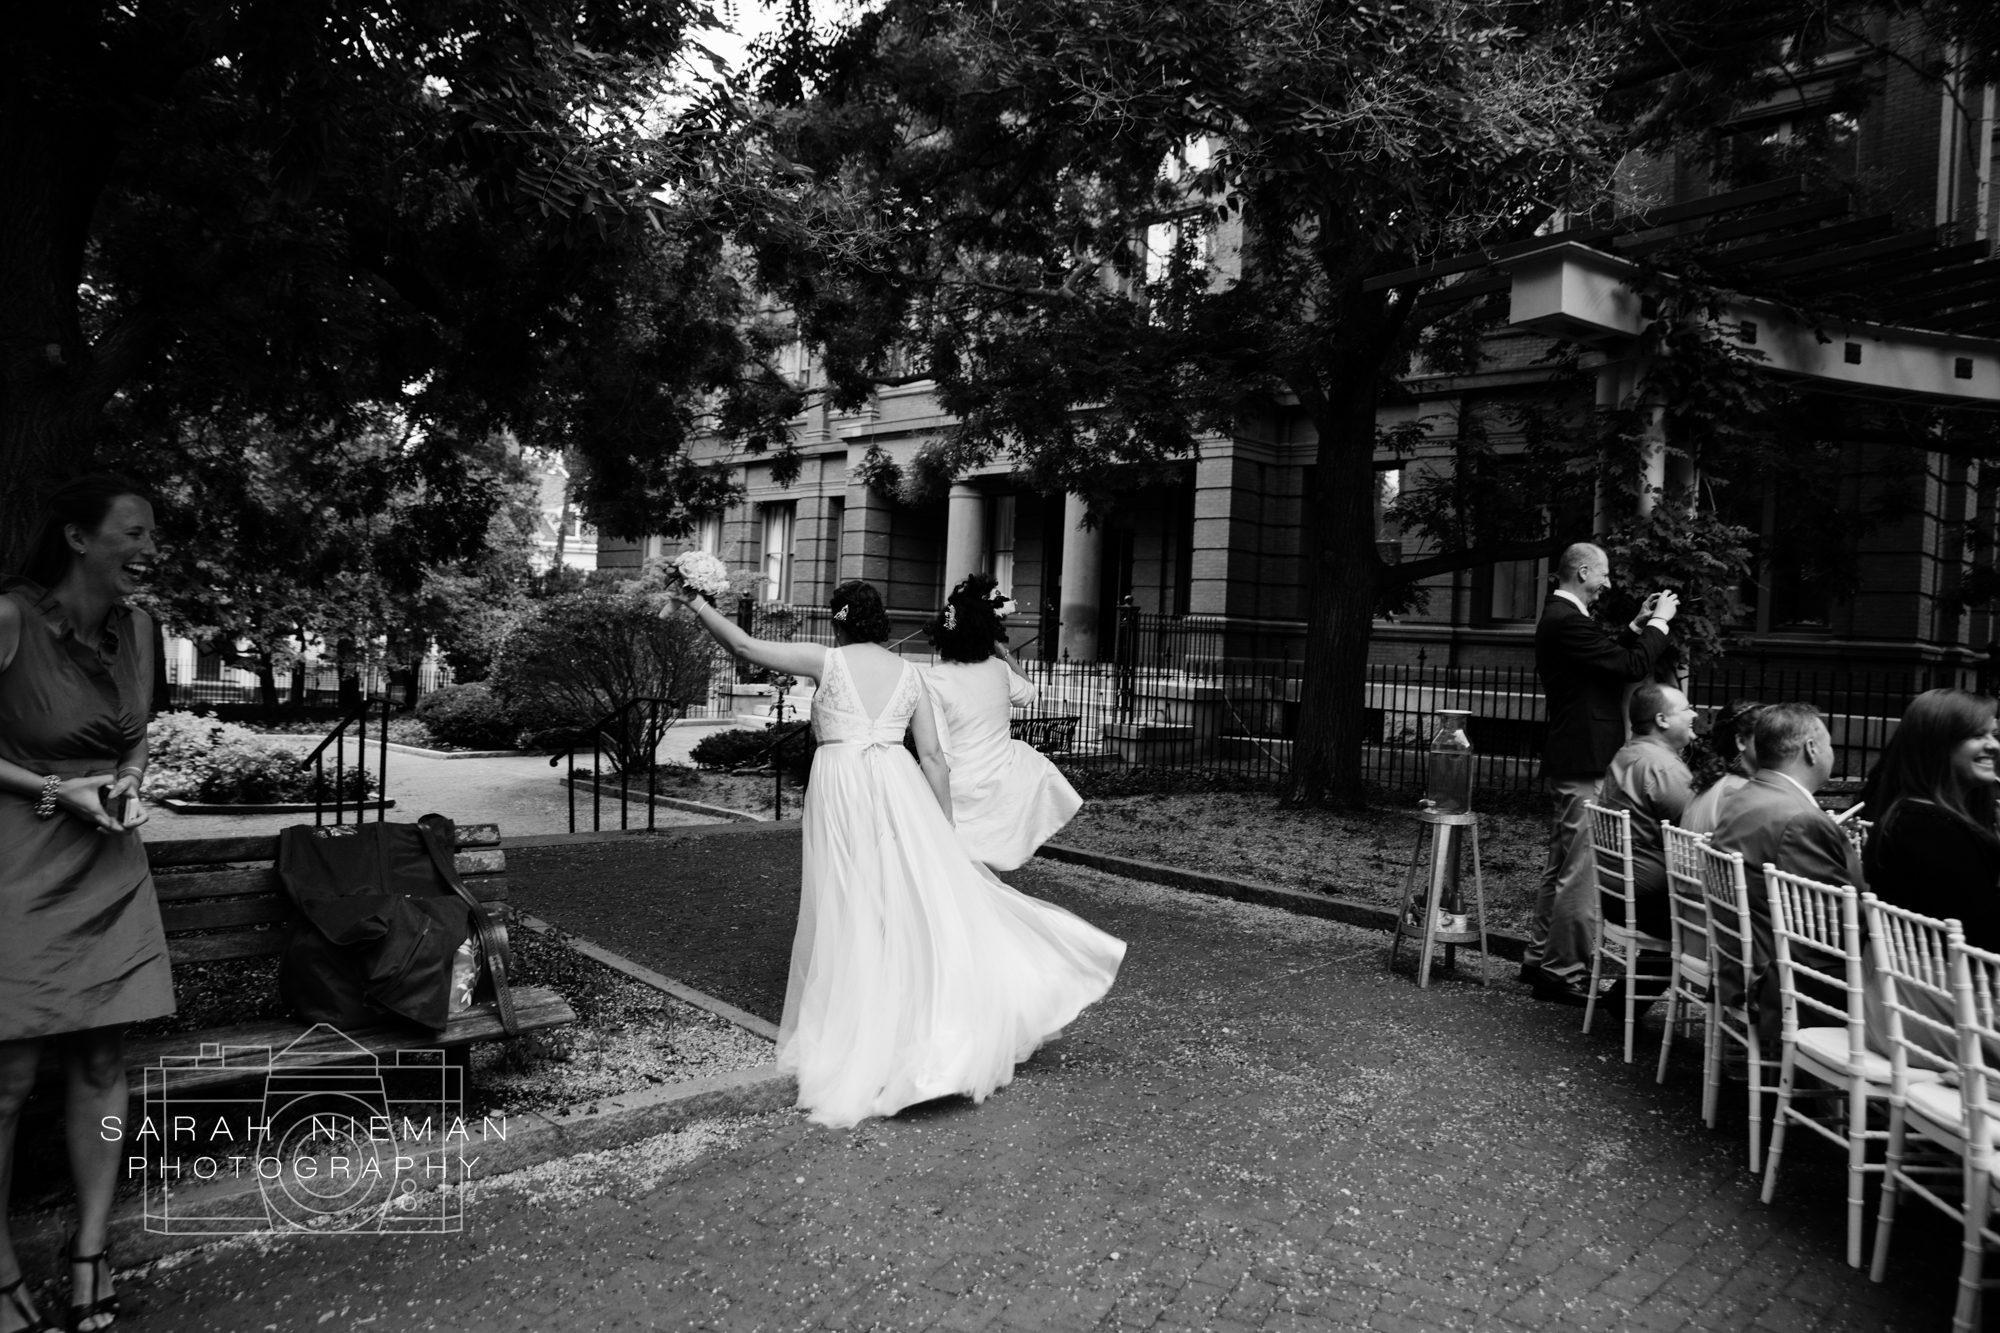 After they excited the ceremony, they ran away, jumping and shouting for joy and I don't think I've ever laughed that much at the end of a ceremony ever.